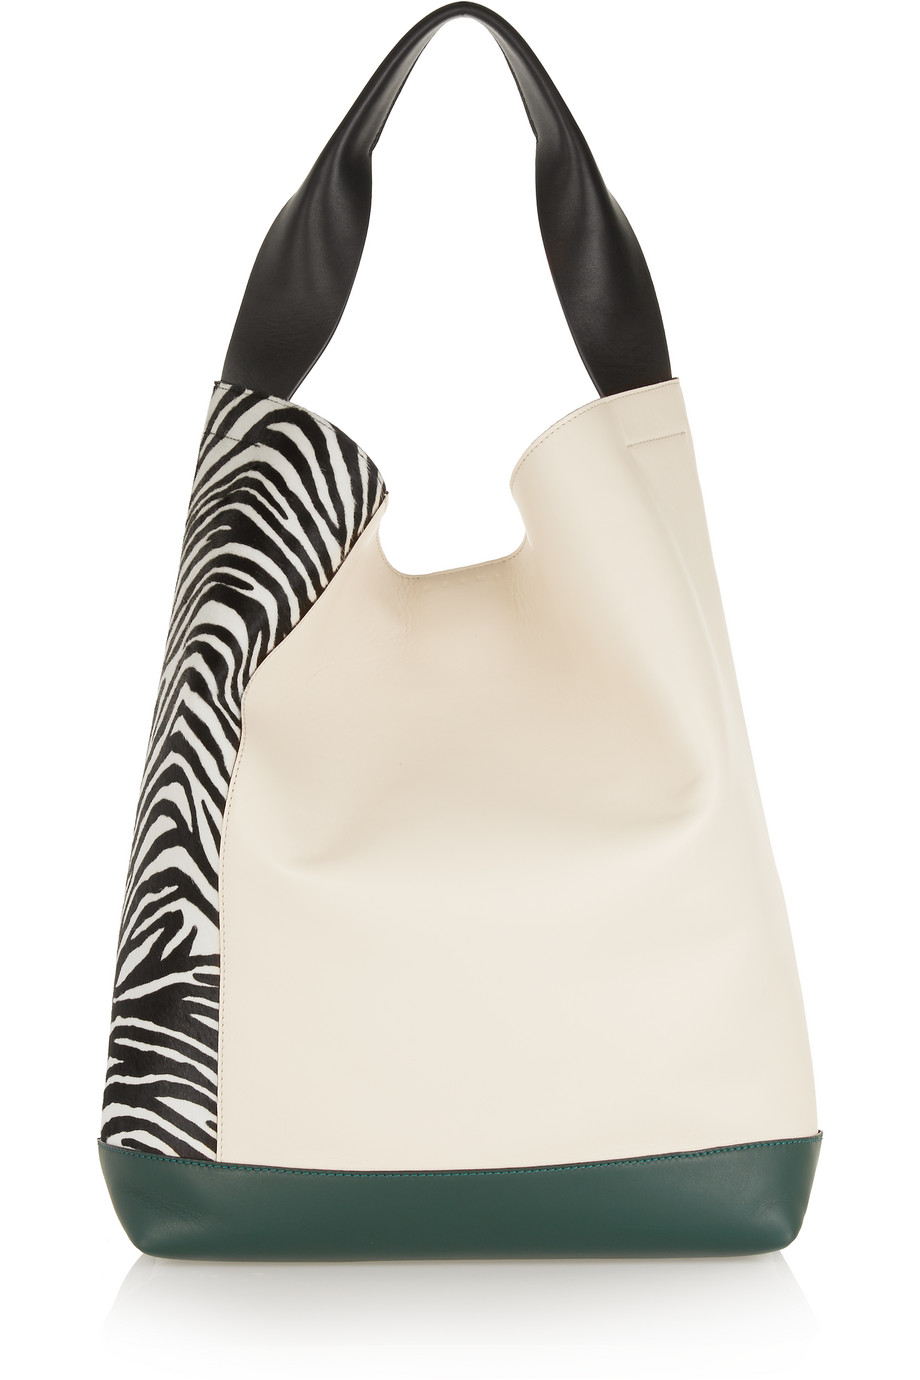 Marni Pod Calf Hair and Leather Shoulder Bag, Zebra Print/White, Women's